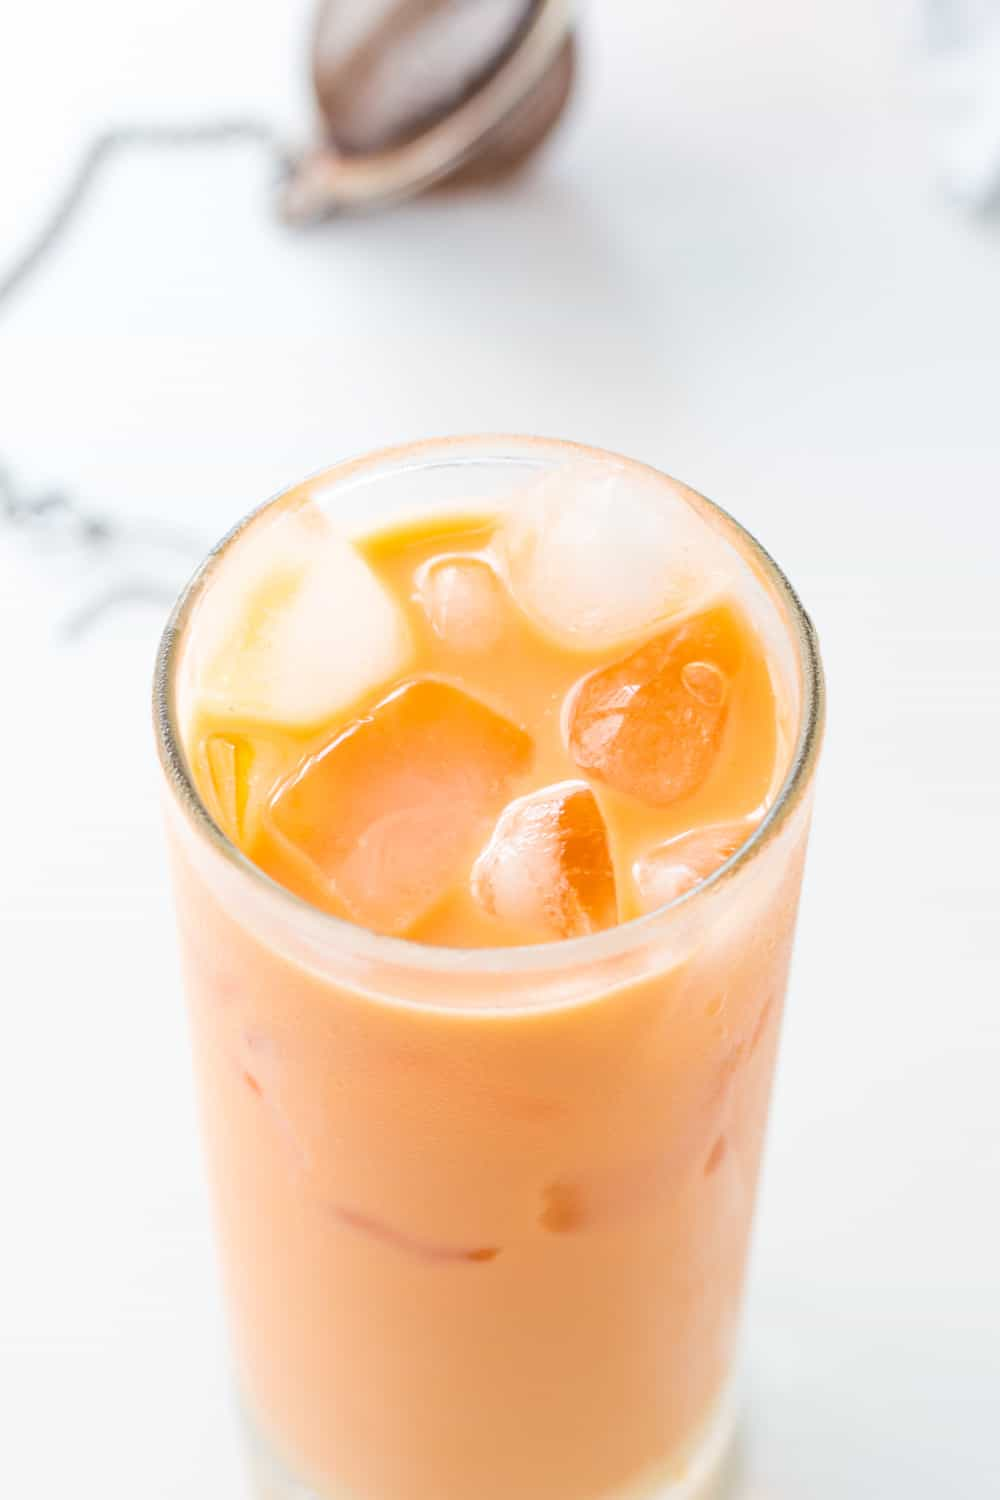 This refreshing Thai Iced Tea with Milk is perfect to accompany a spicy Thai food dinner. This homemade recipe uses palm sugar and coconut milk in place of evaporated and sweetened condensed milk to make it dairy free.